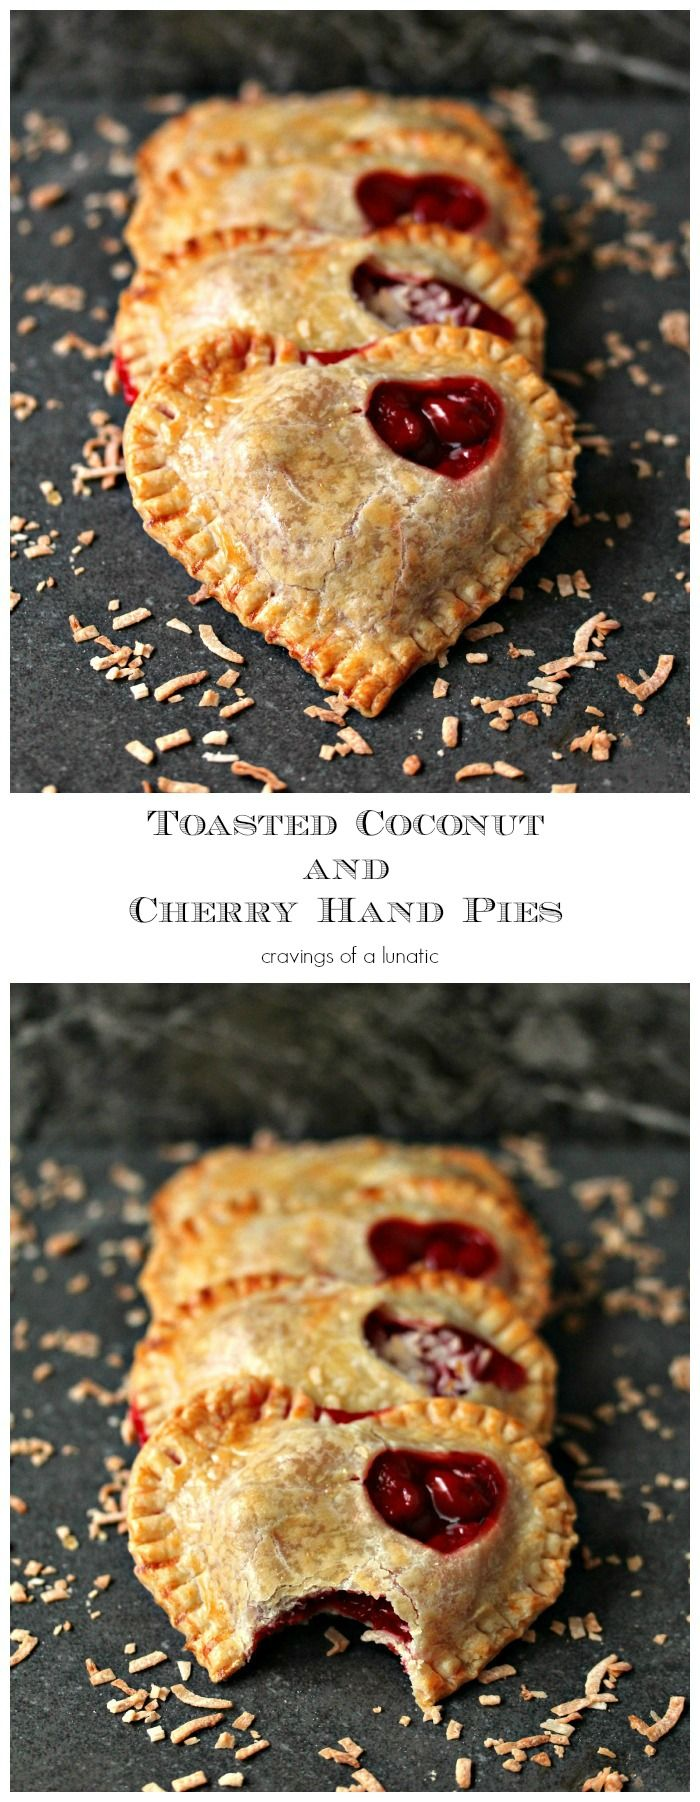 Toasted Coconut and Cherry Hand Pies | TThese little toasted coconut and cherry hand pies are absolutely scrumptious. Plus they are incredibly easy to make which is a huge perk!